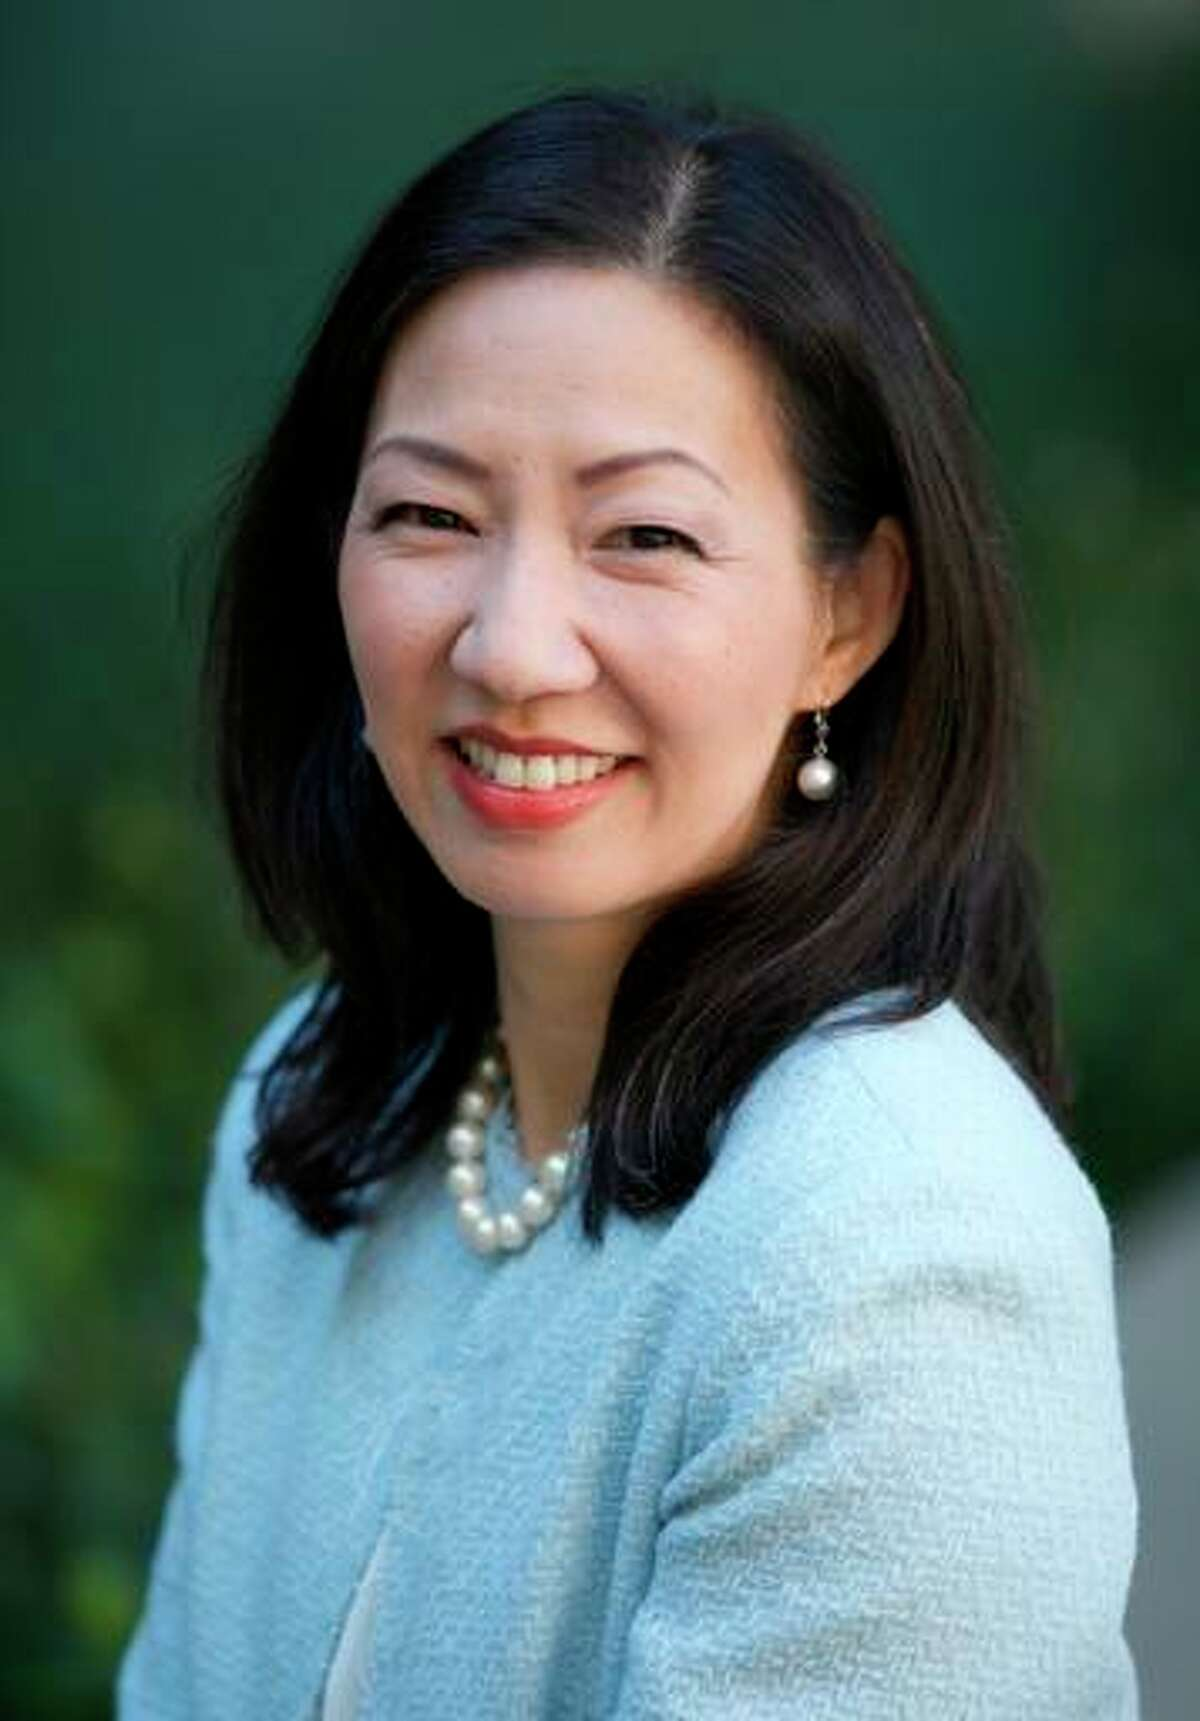 Catherine Kuo, a mother of two and a Dublin Unified School District trustee died in March 2021 after she was struck by a vehicle while volunteering at a food distribution event at a Dublin middle school, police and school district officials said.